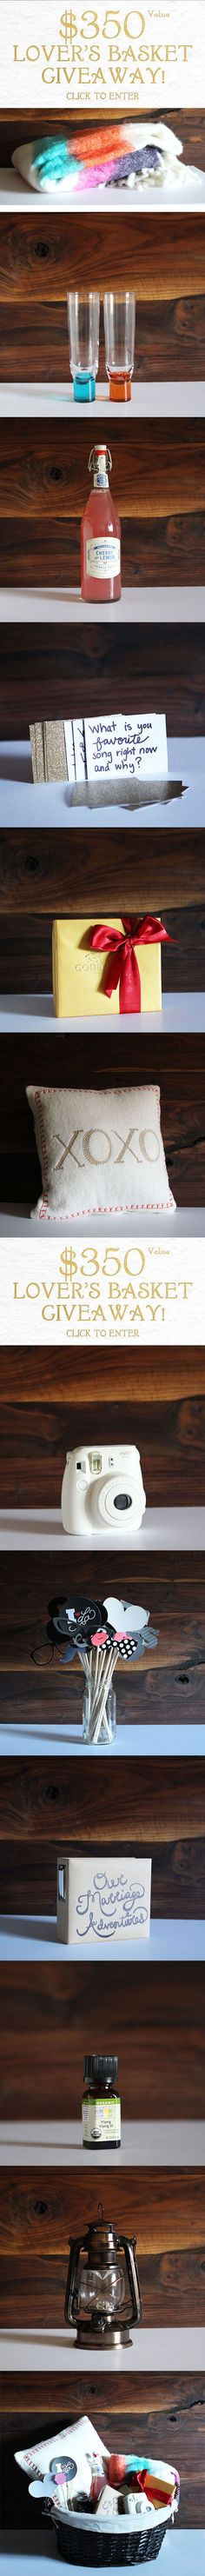 The Perfect Marriage Date: The Lover's Basket Giveaway – $350 Value click the image to enter.